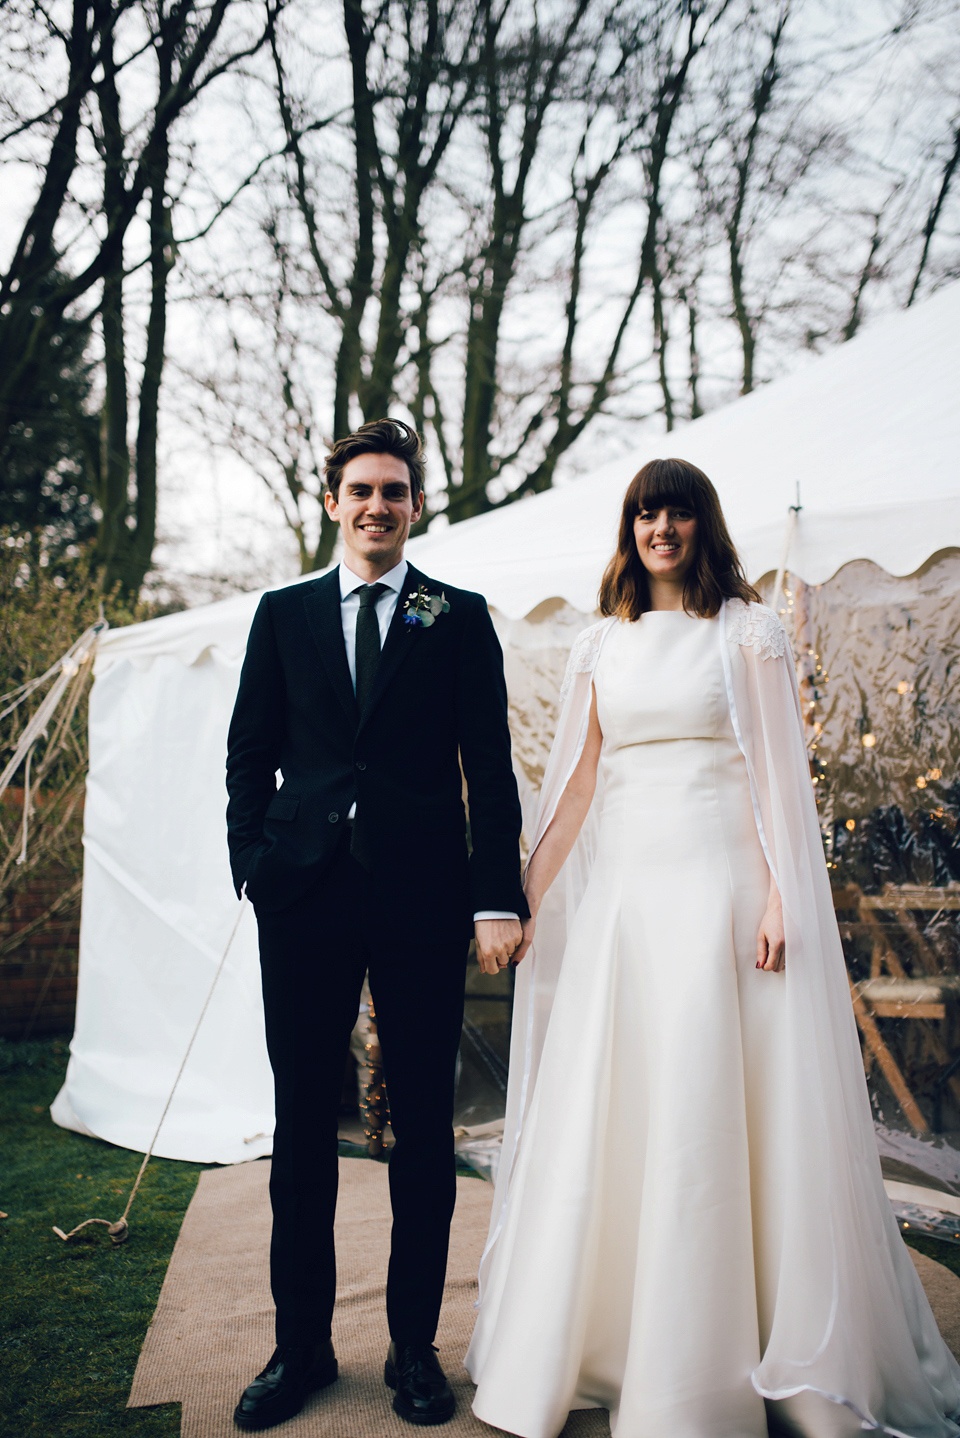 Second Hand Wedding Dresses.Two Ceremonies And A Second Hand Dress For A Relaxed And Informal